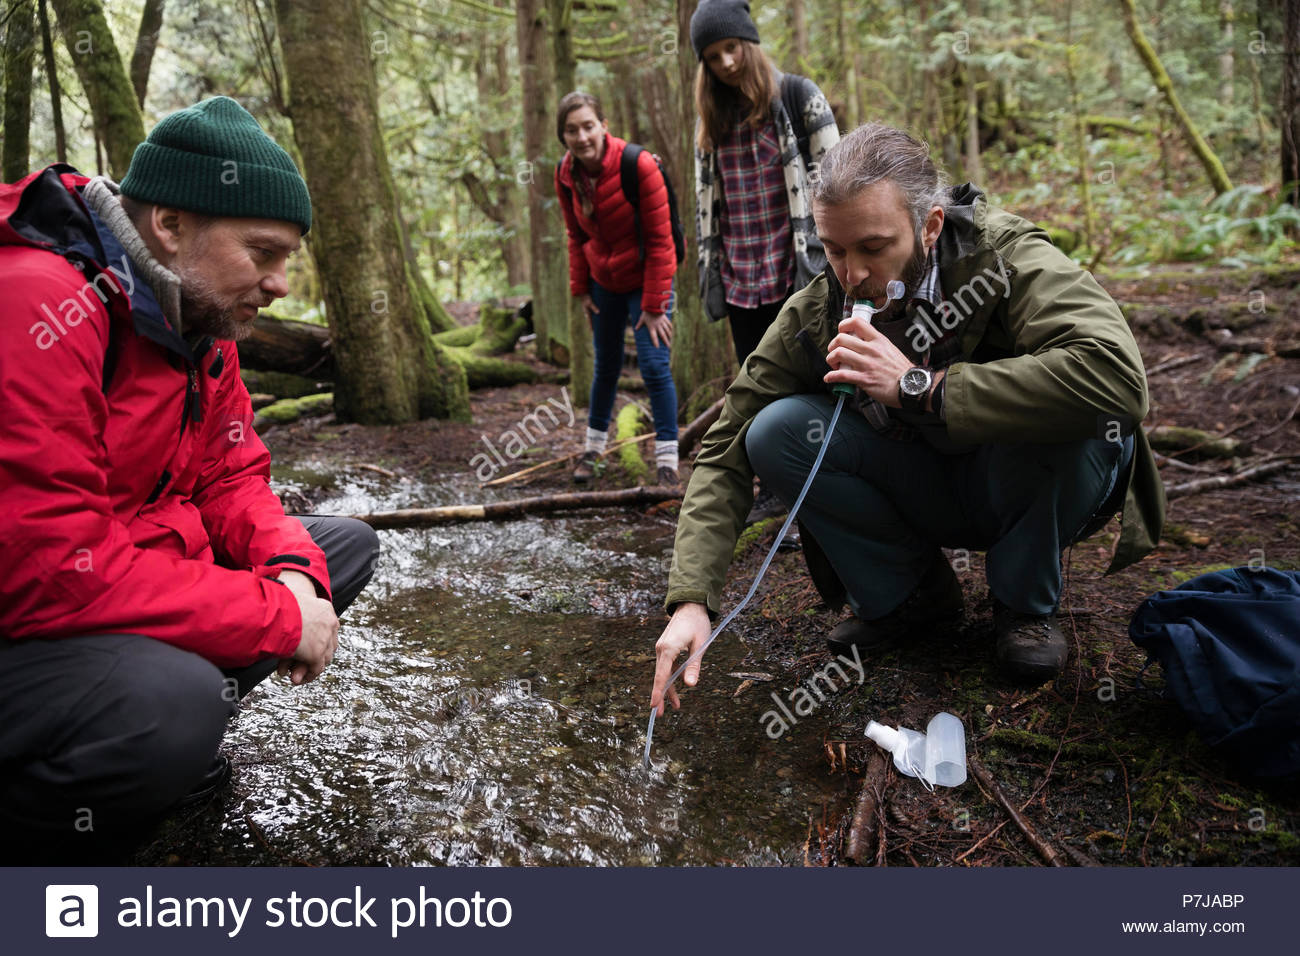 Trail guide and family drinking from stream in woods, using pump filter - Stock Image